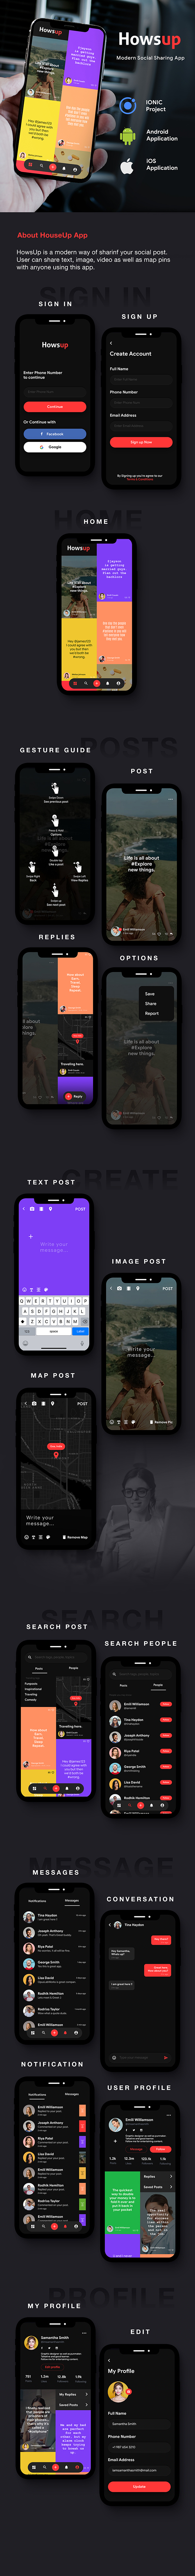 Howsup Social Android App Template + Social iOS App Template (HTML + CSS   IONIC 5) - 3